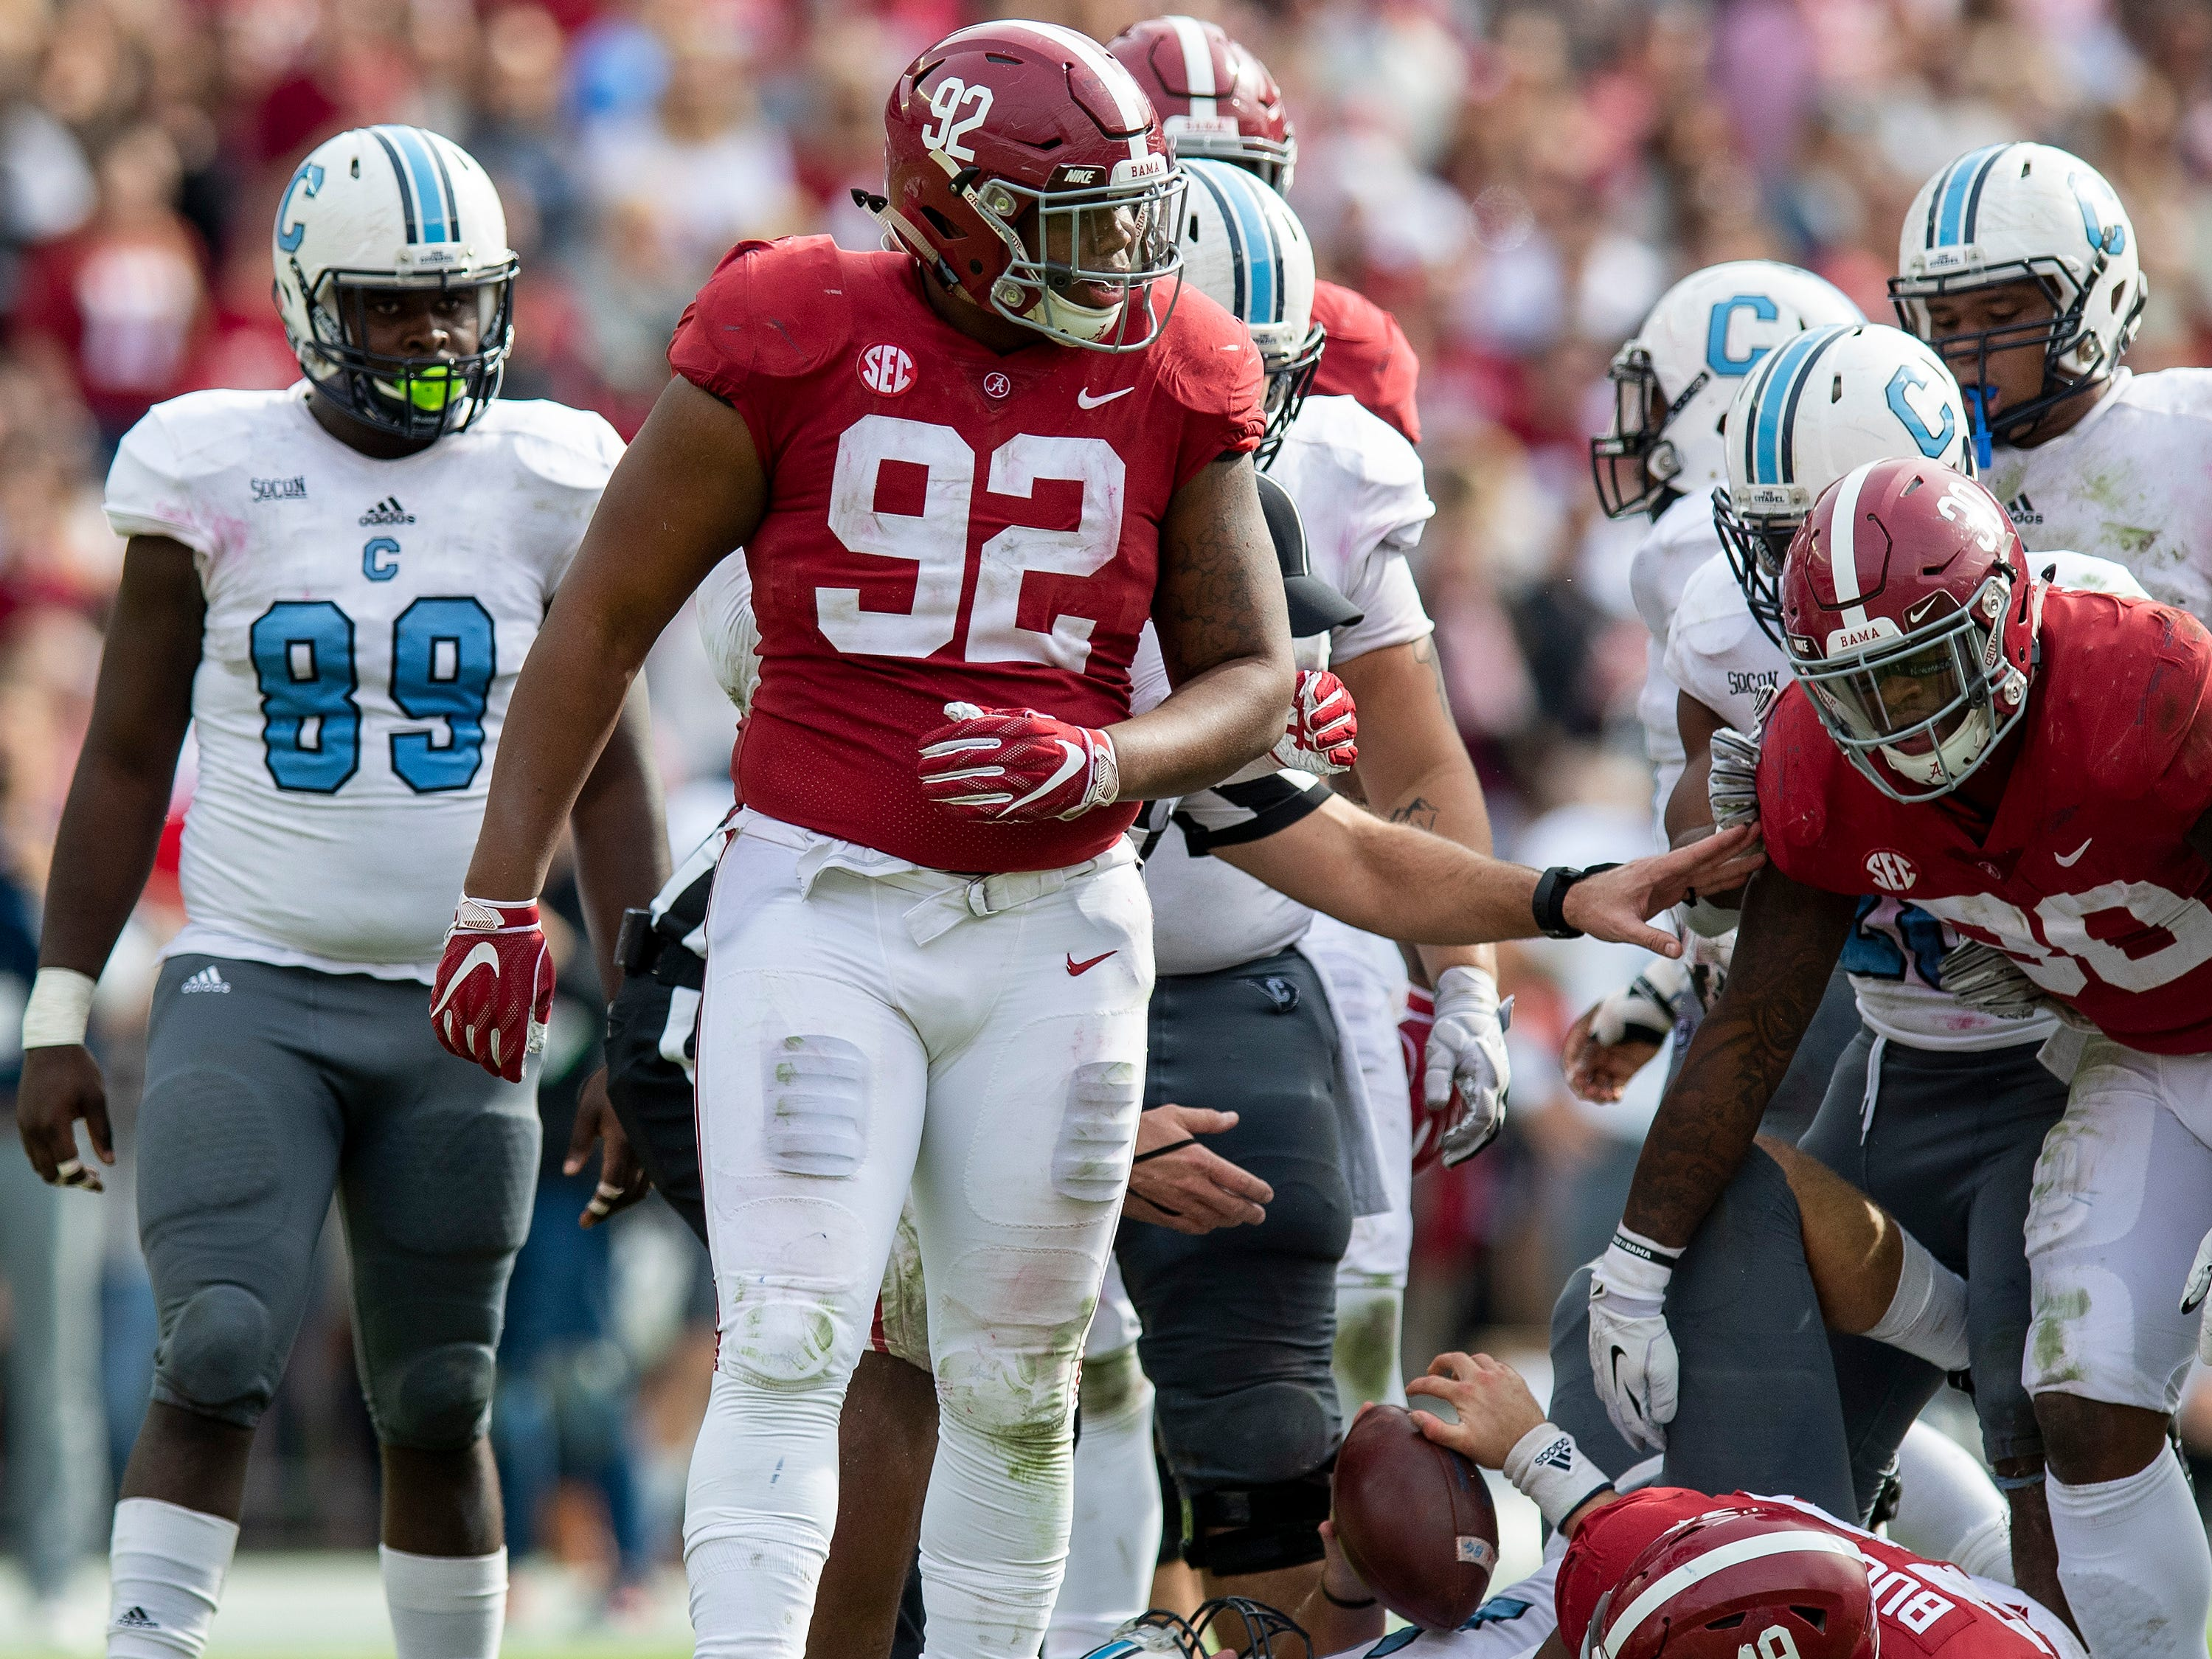 Alabama defensive lineman Quinnen Williams (92) after sacking Citadel quarterback Brandon Rainey (16) in second half action at Bryant-Denny Stadium in Tuscaloosa, Ala., on Saturday November 17, 2018.